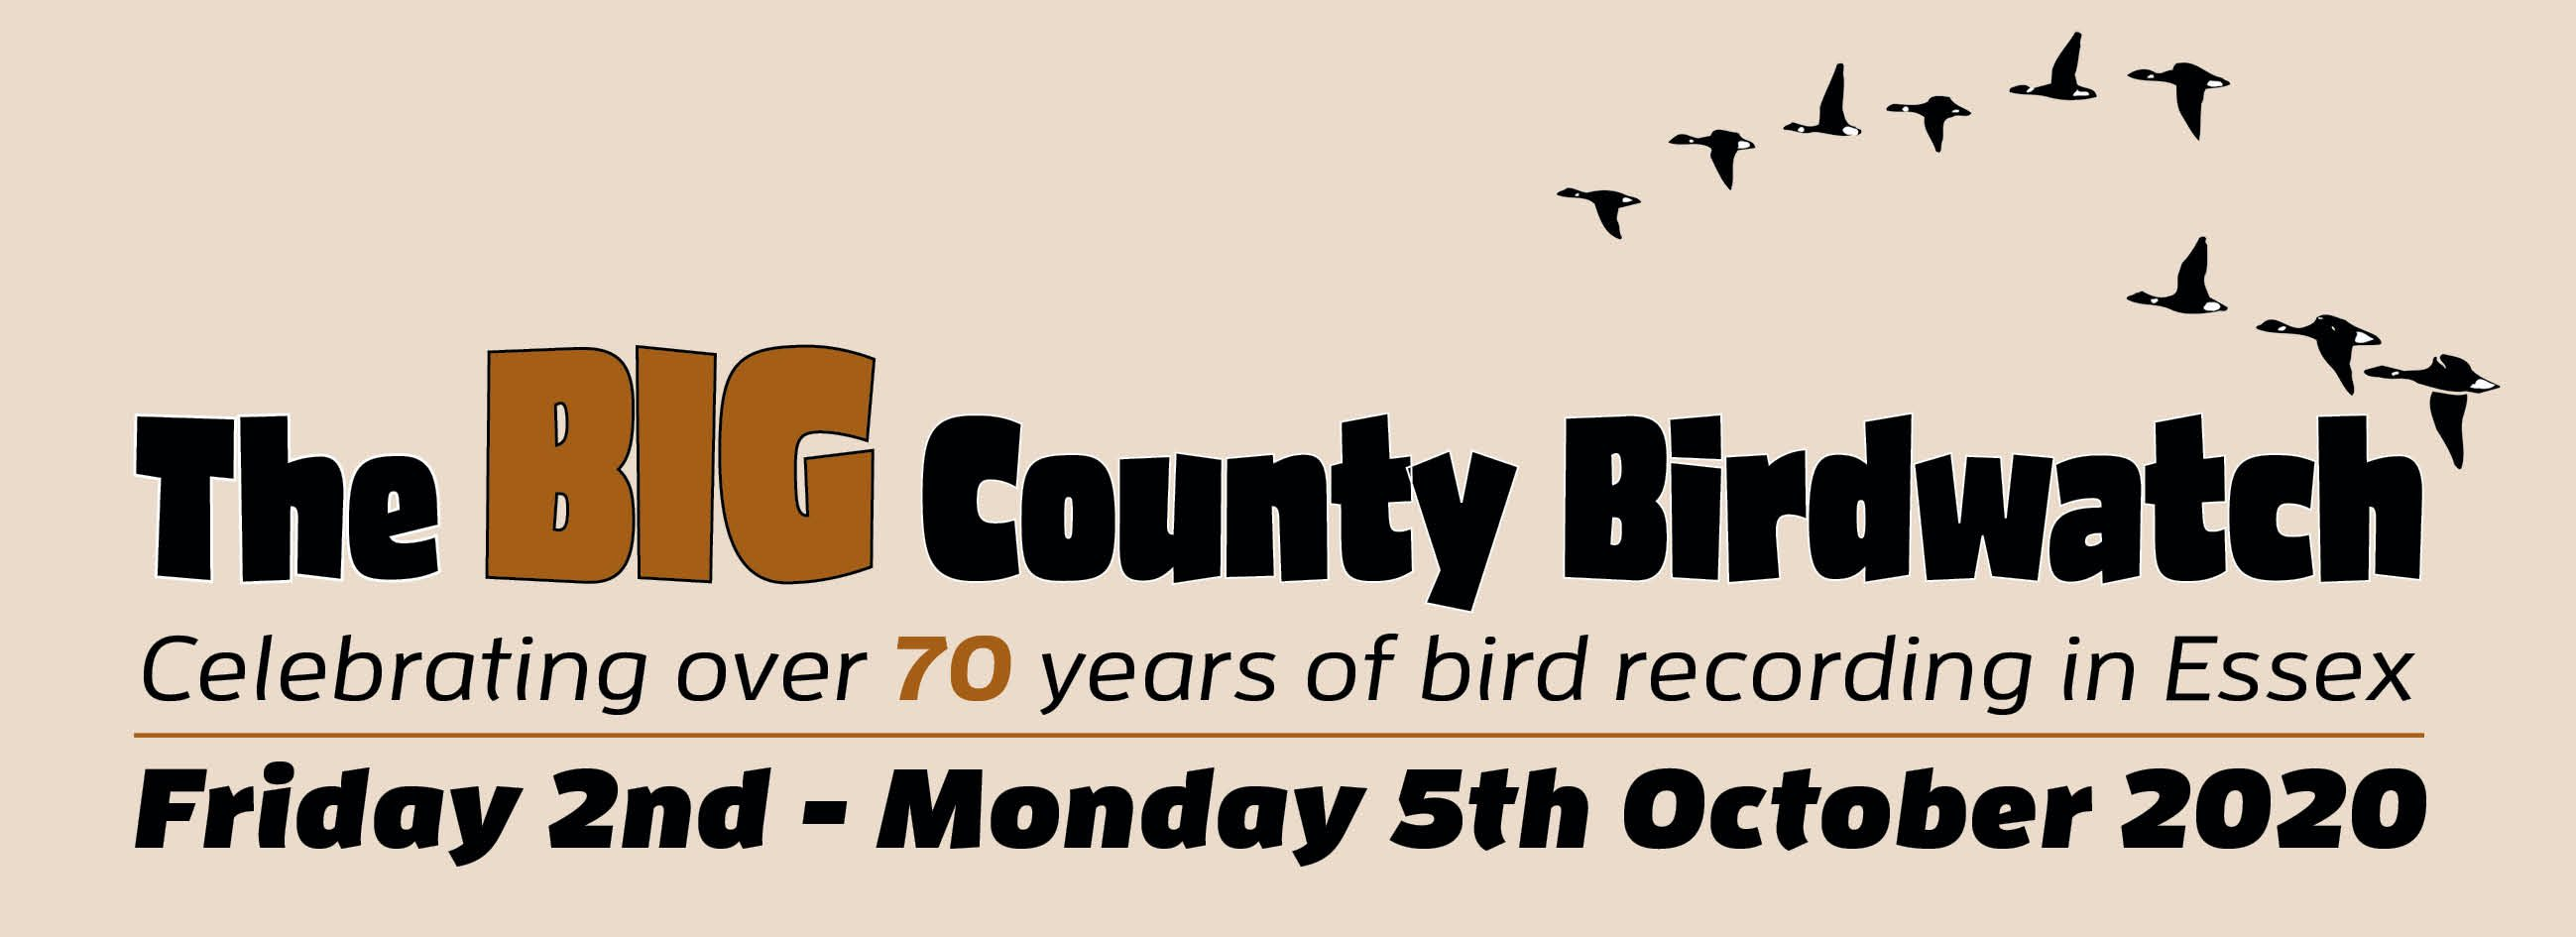 Big County Birdwatch